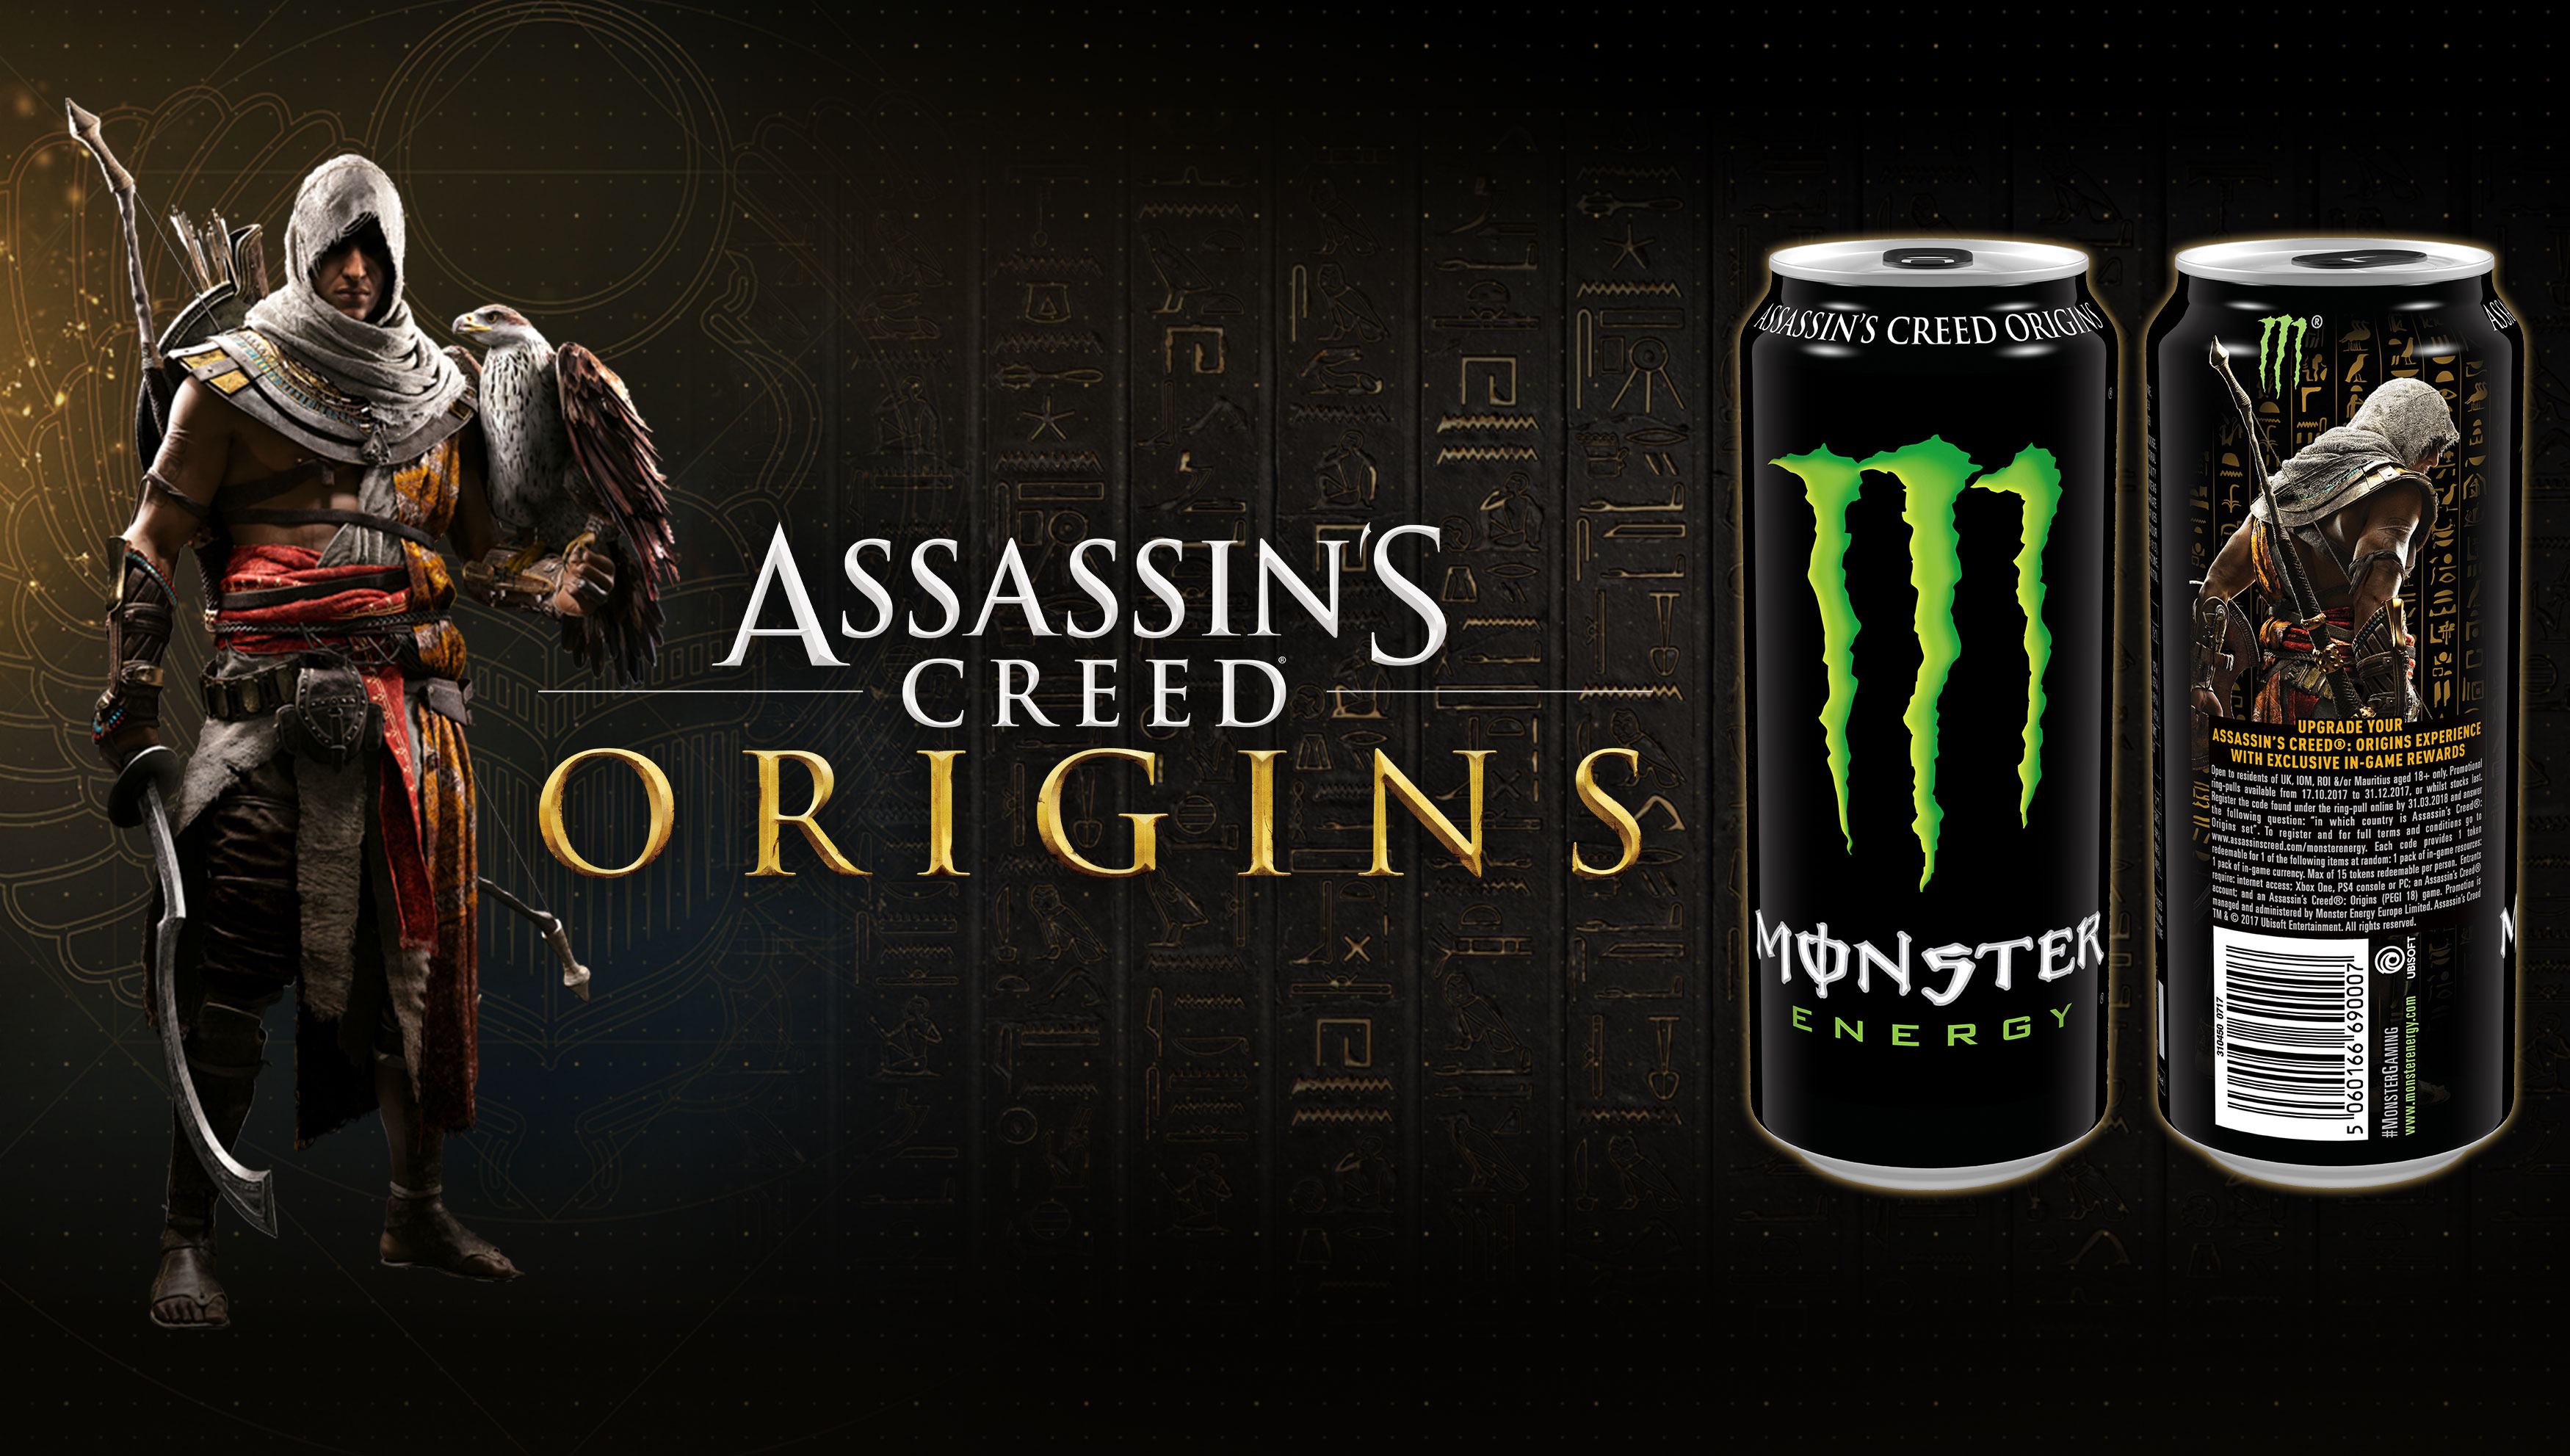 Assassin's Creed Origins and Monster Energy drinks form an ...